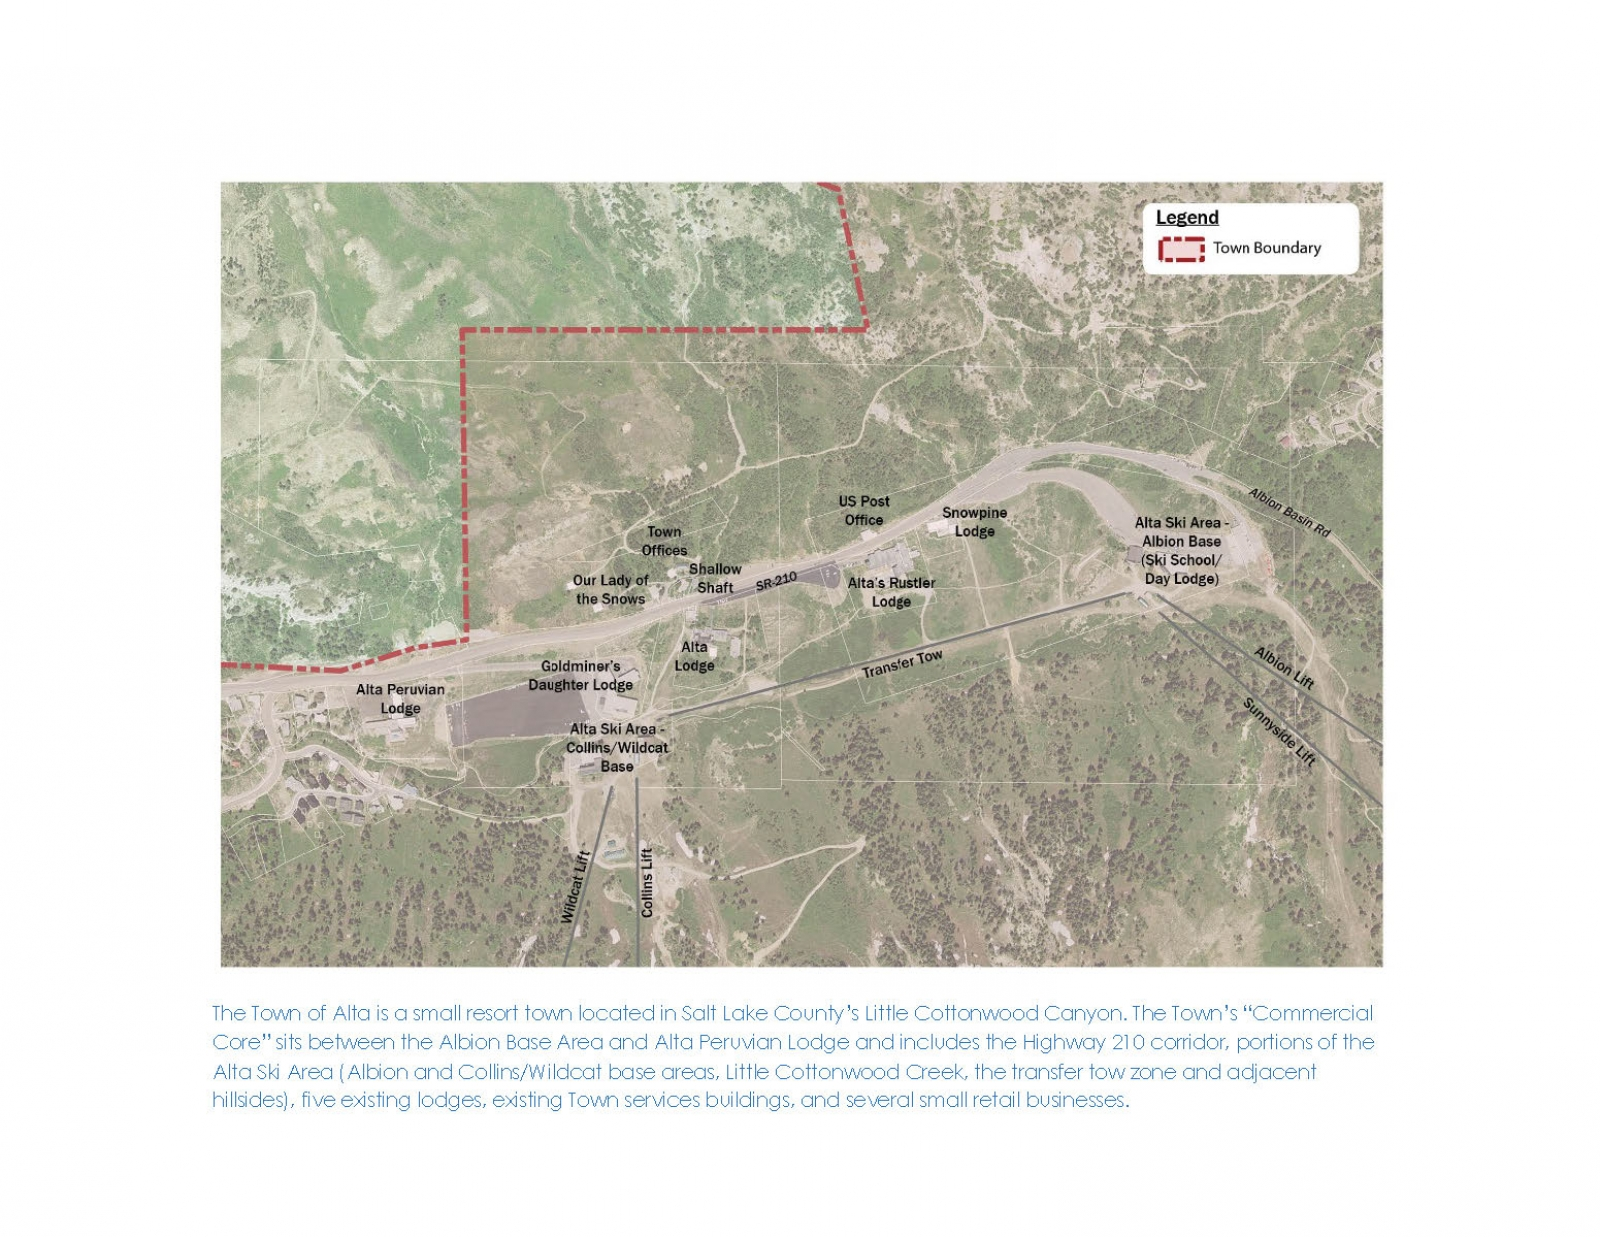 Town of Alta Commercial Core Plan